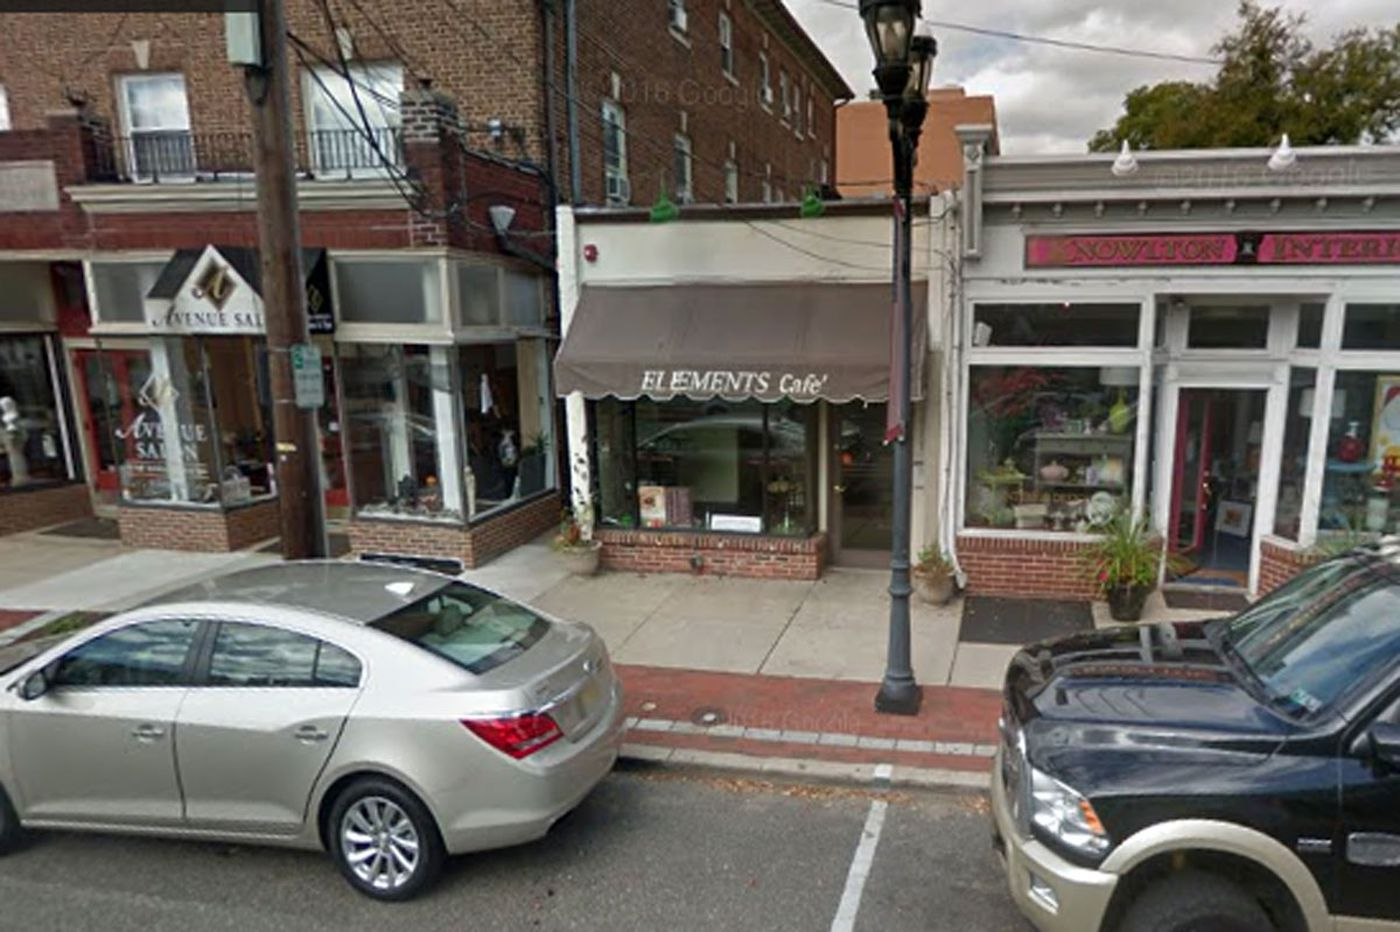 Elements Cafe to close after 14 years